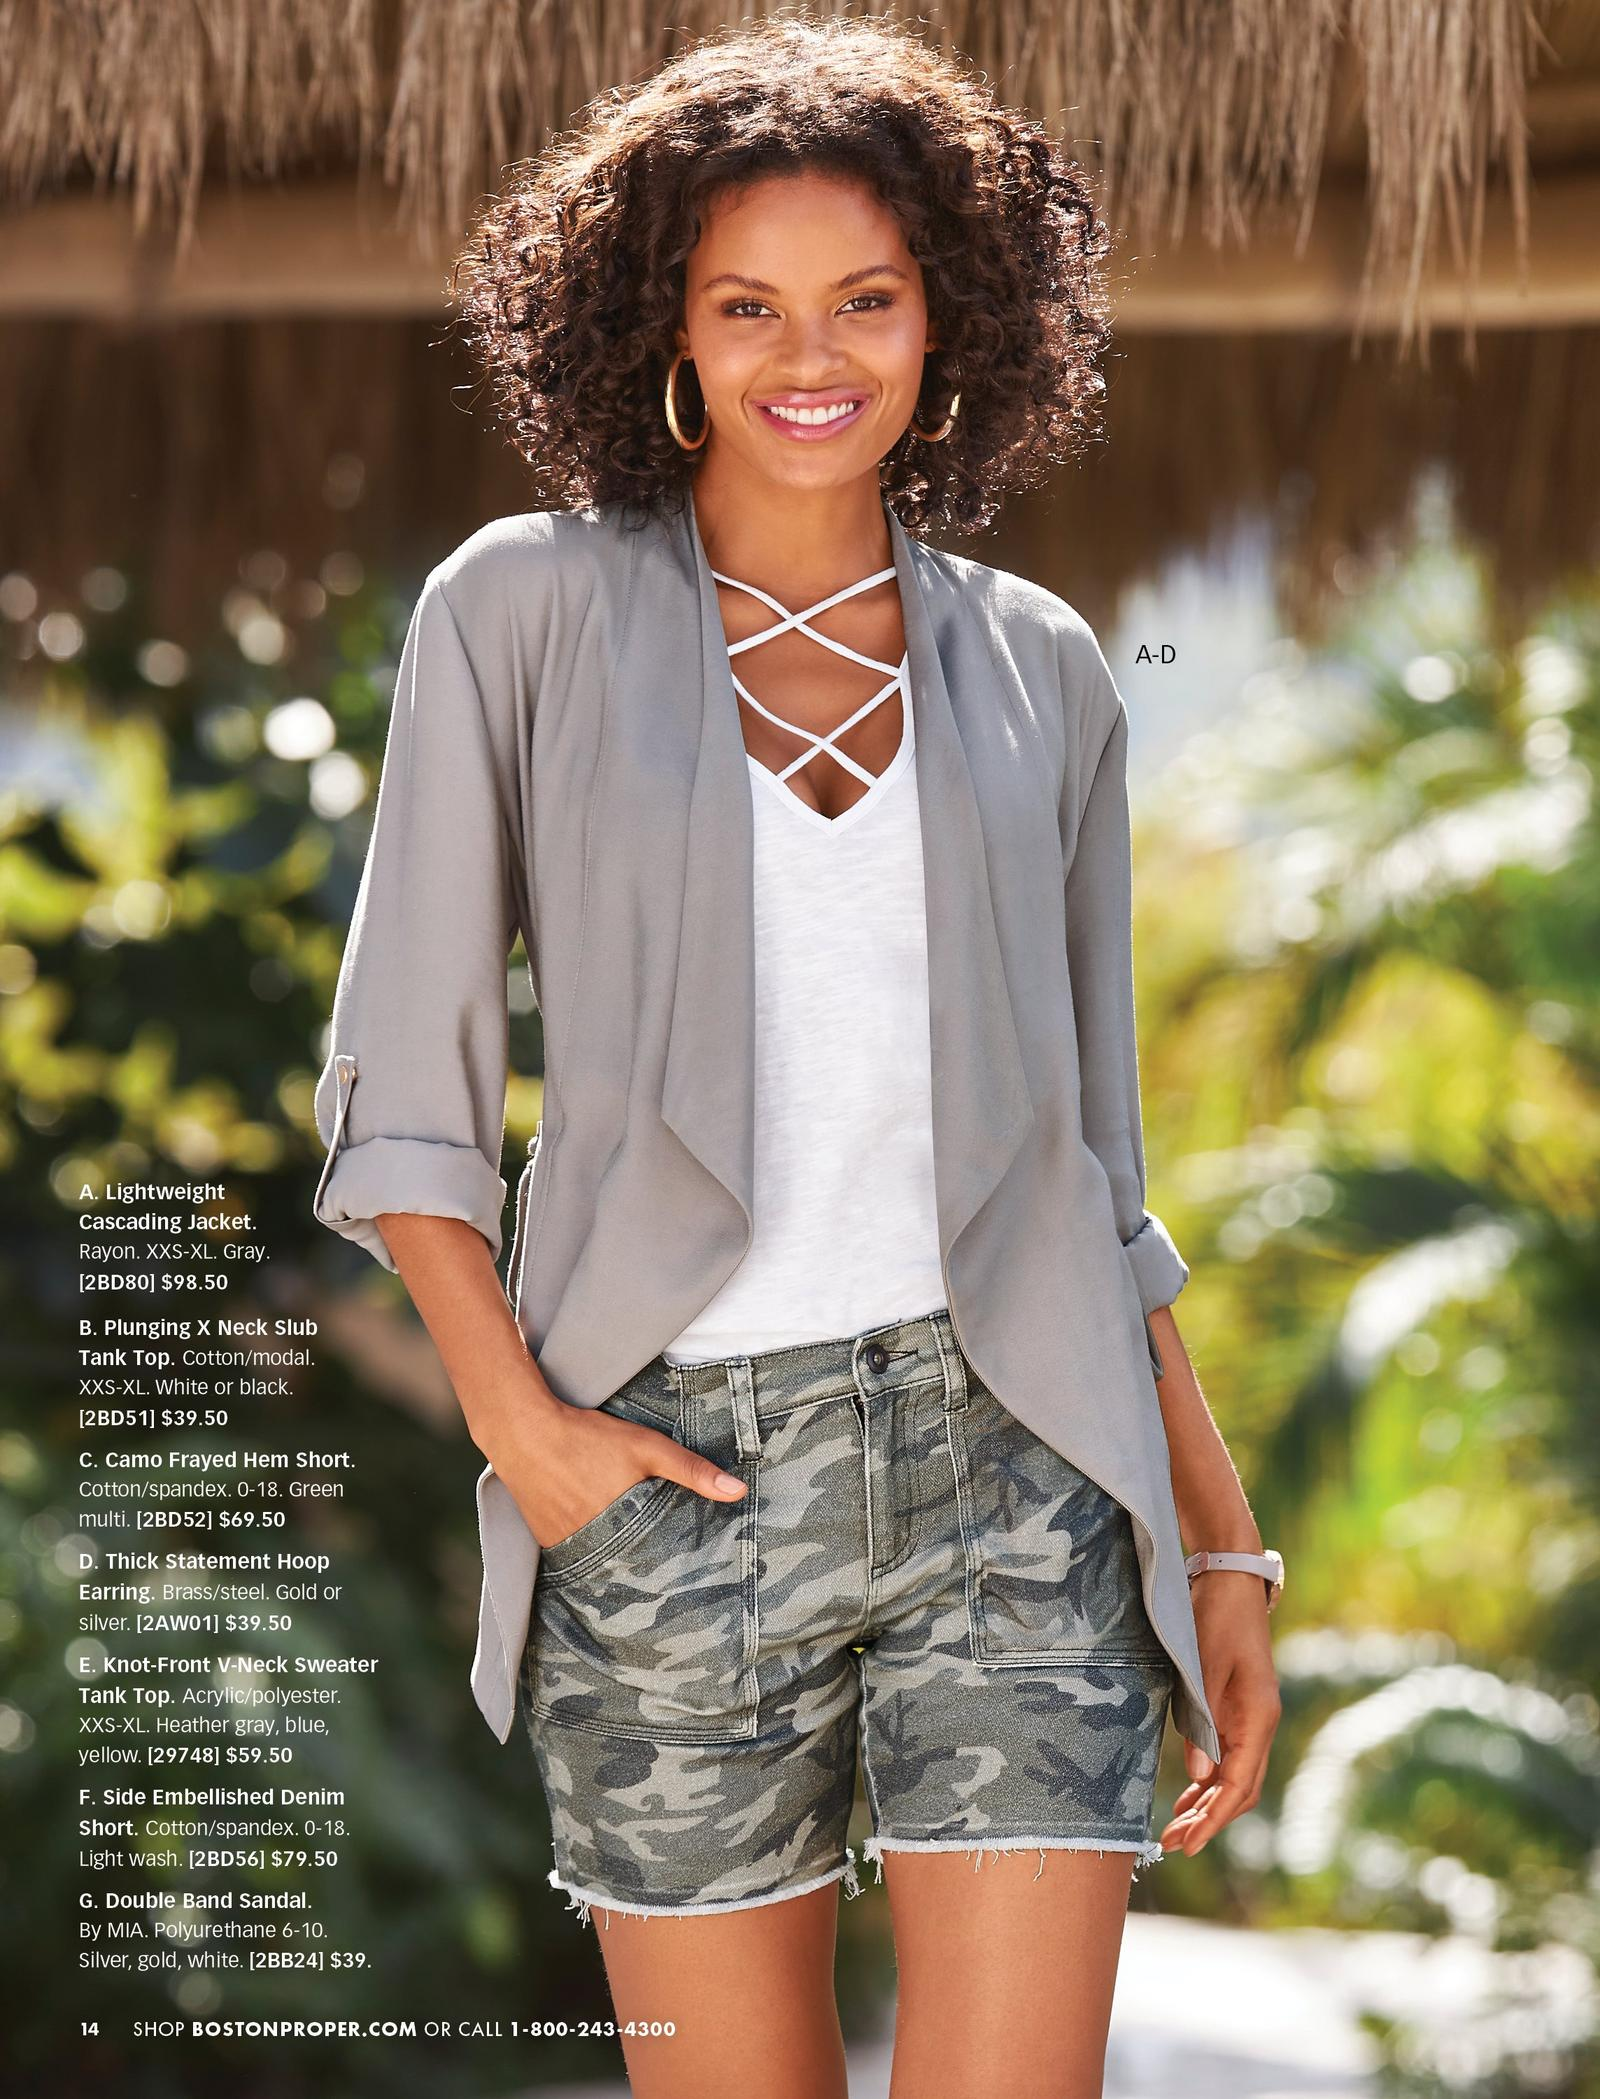 model wearing a gray light-weight jacket, white x neck slub tank top, camo printed denim shorts, and gold hoop earrings.